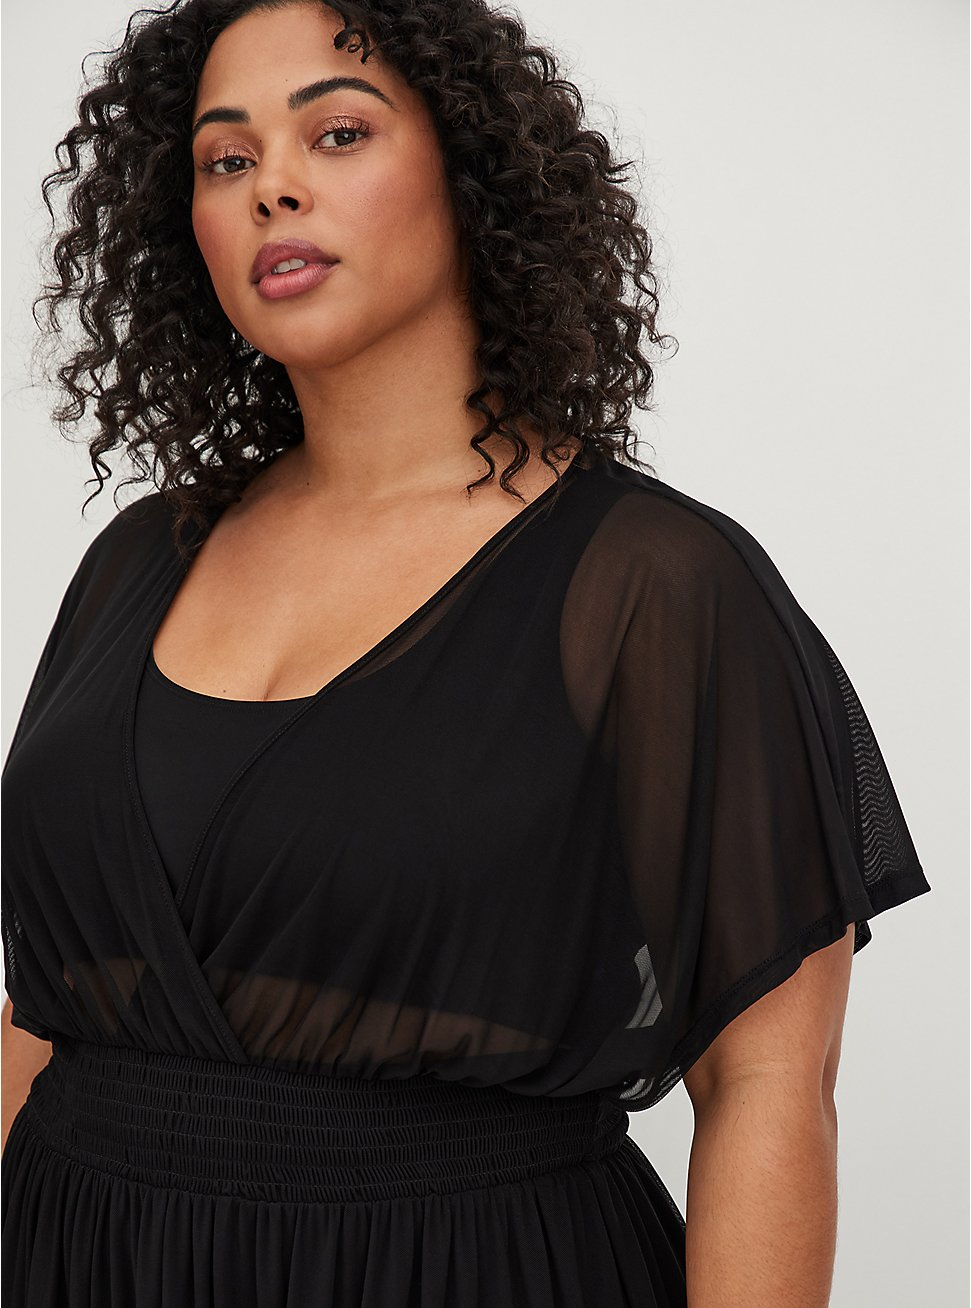 Black Mesh Dolman Dress Swim Cover Up, DEEP BLACK, hi-res